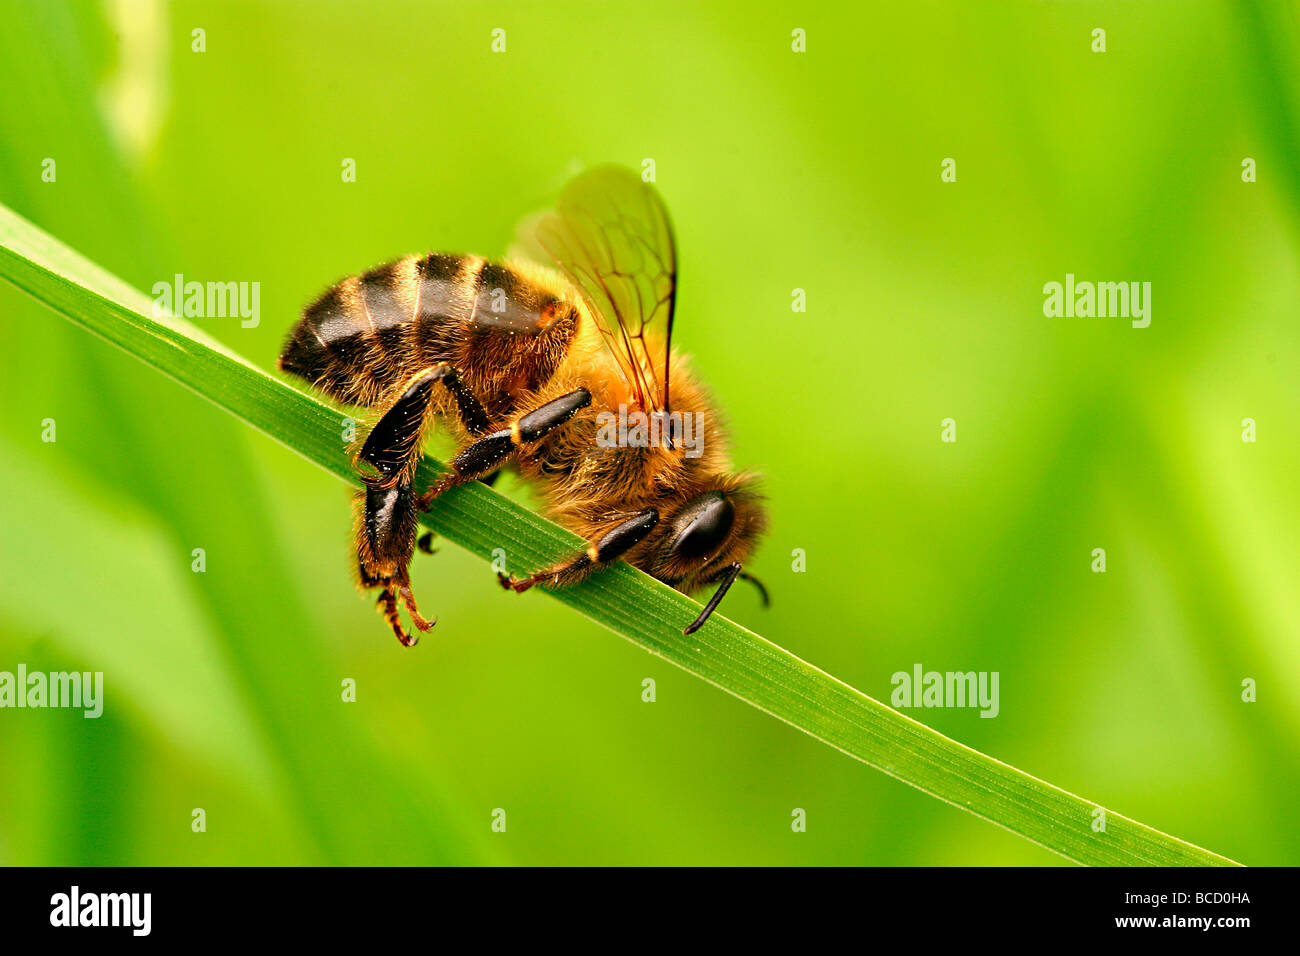 HONEY BEE (Apis melifera) collapse - Stock Image